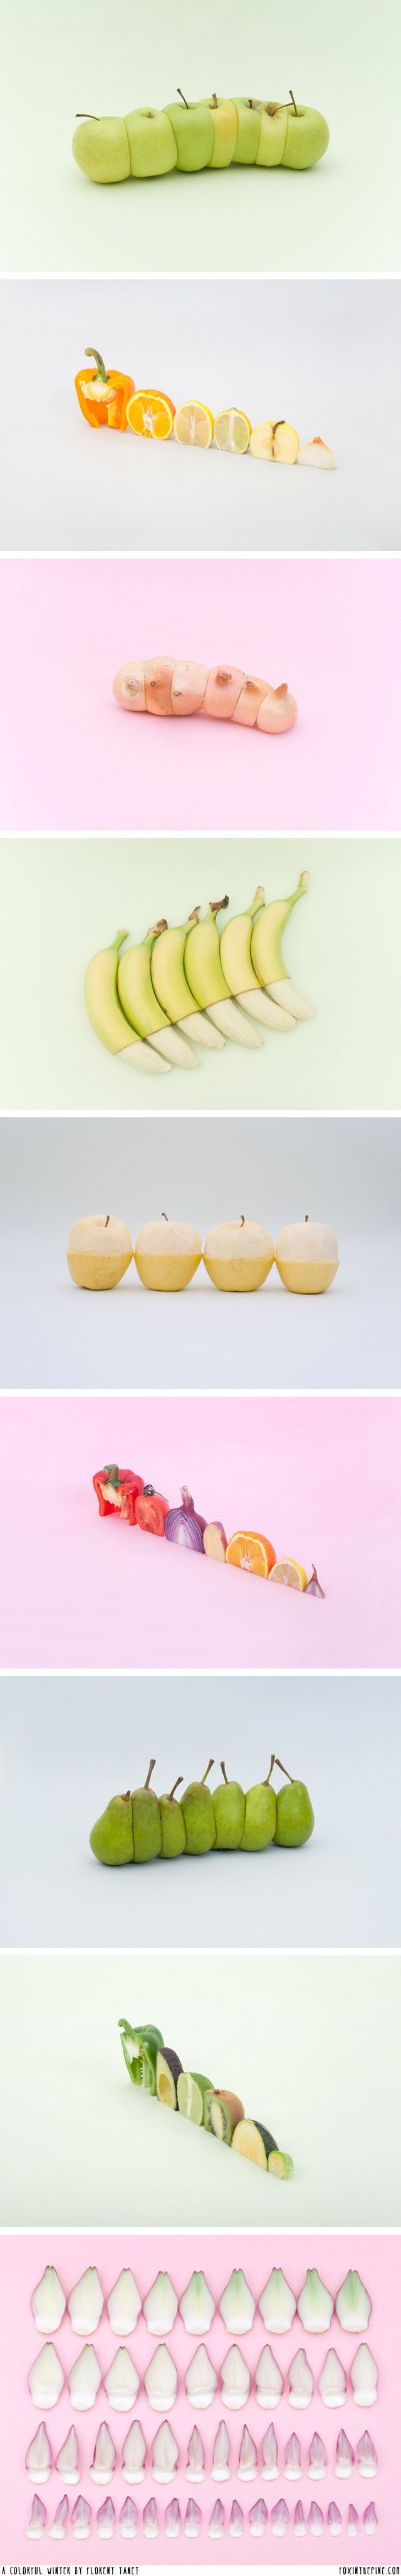 Food artwork by Florent Tanet   //   FOXINTHEPINE.COM